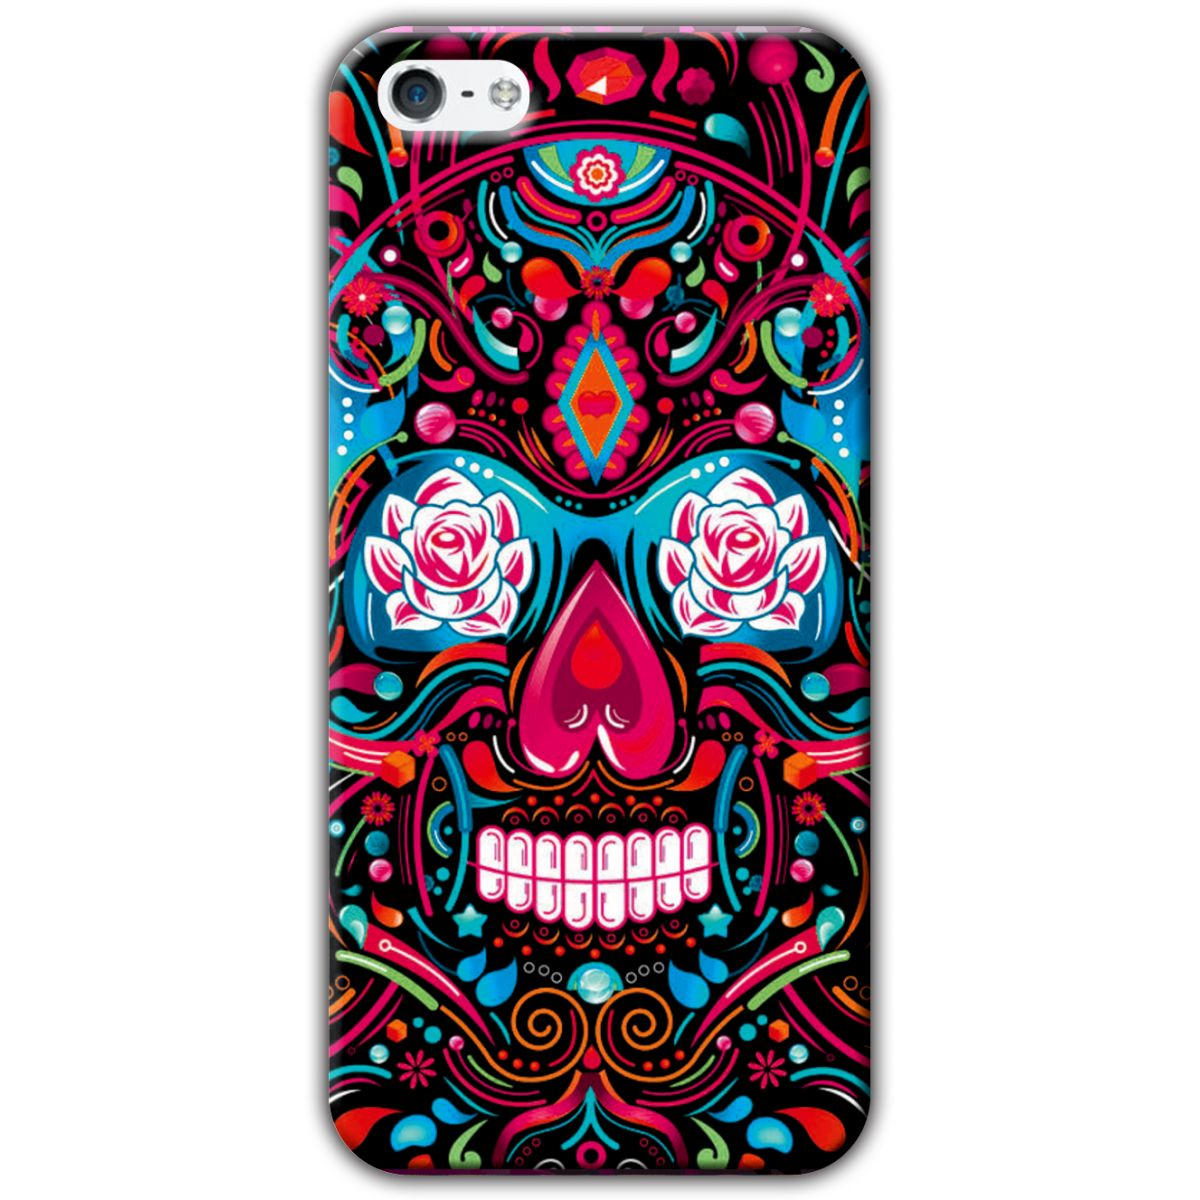 Capa Personalizada para Apple iPhone 5 5S SE - AR08